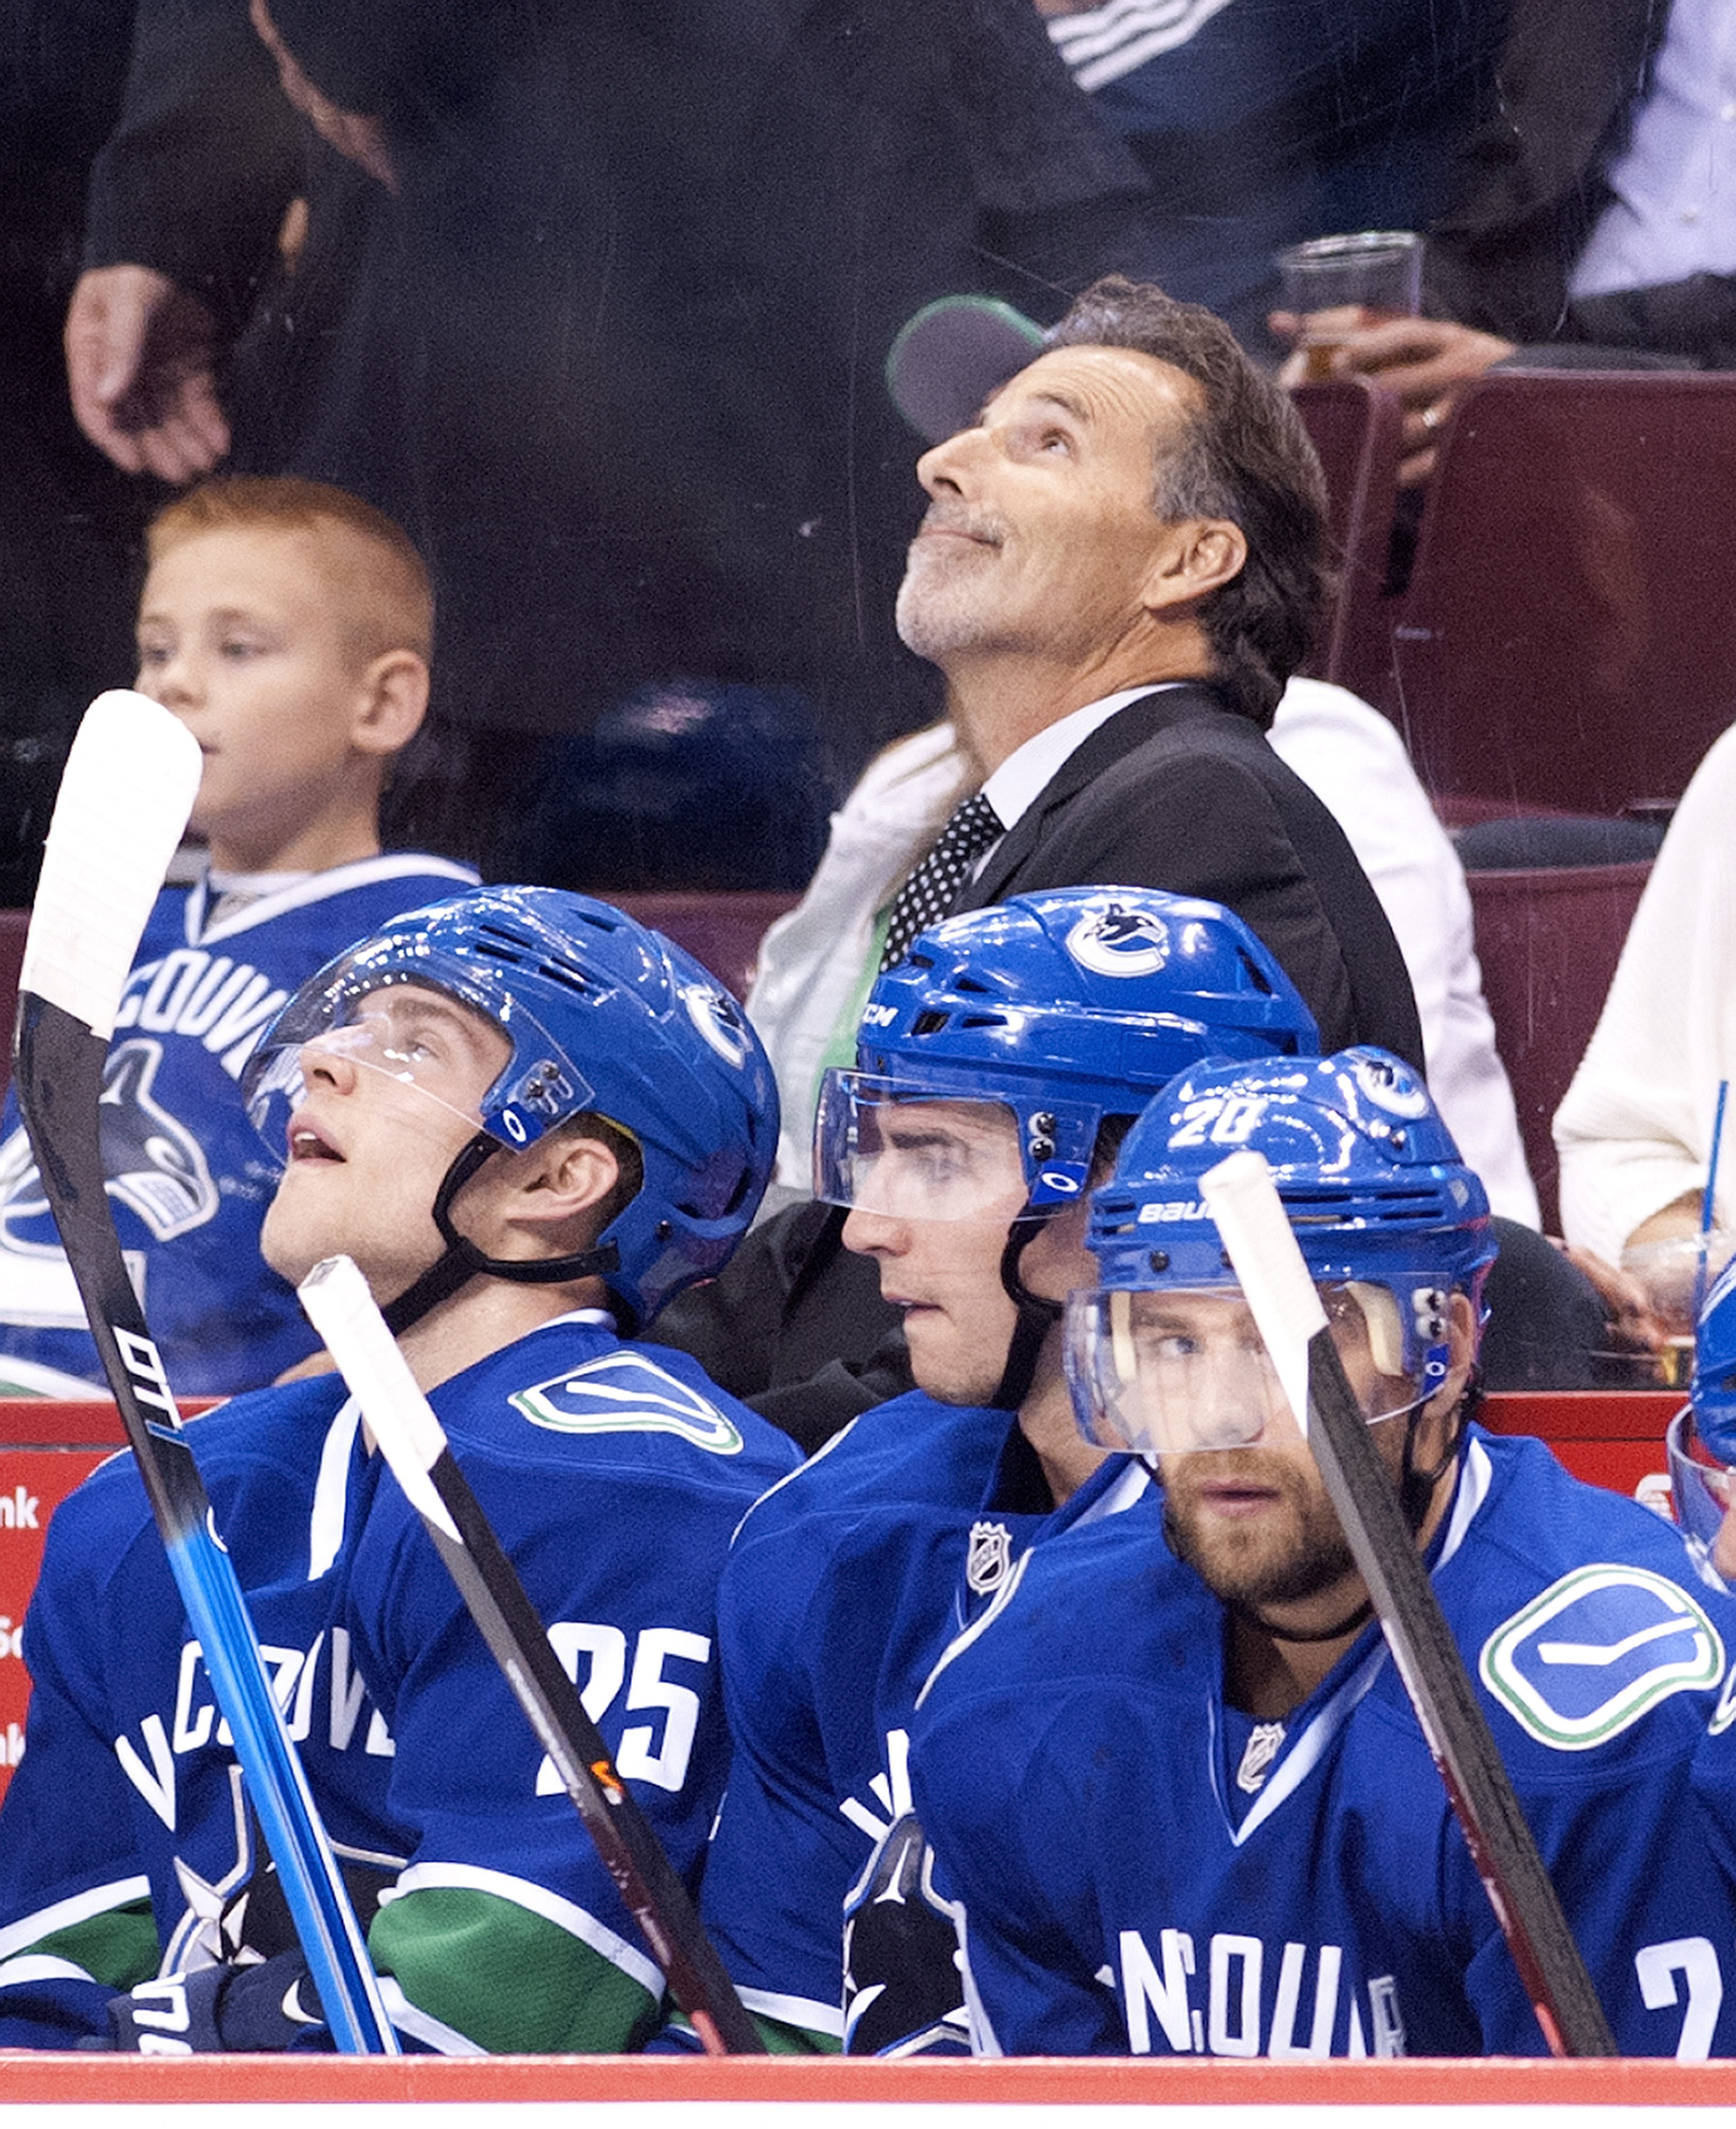 Show us what you got, Torts...